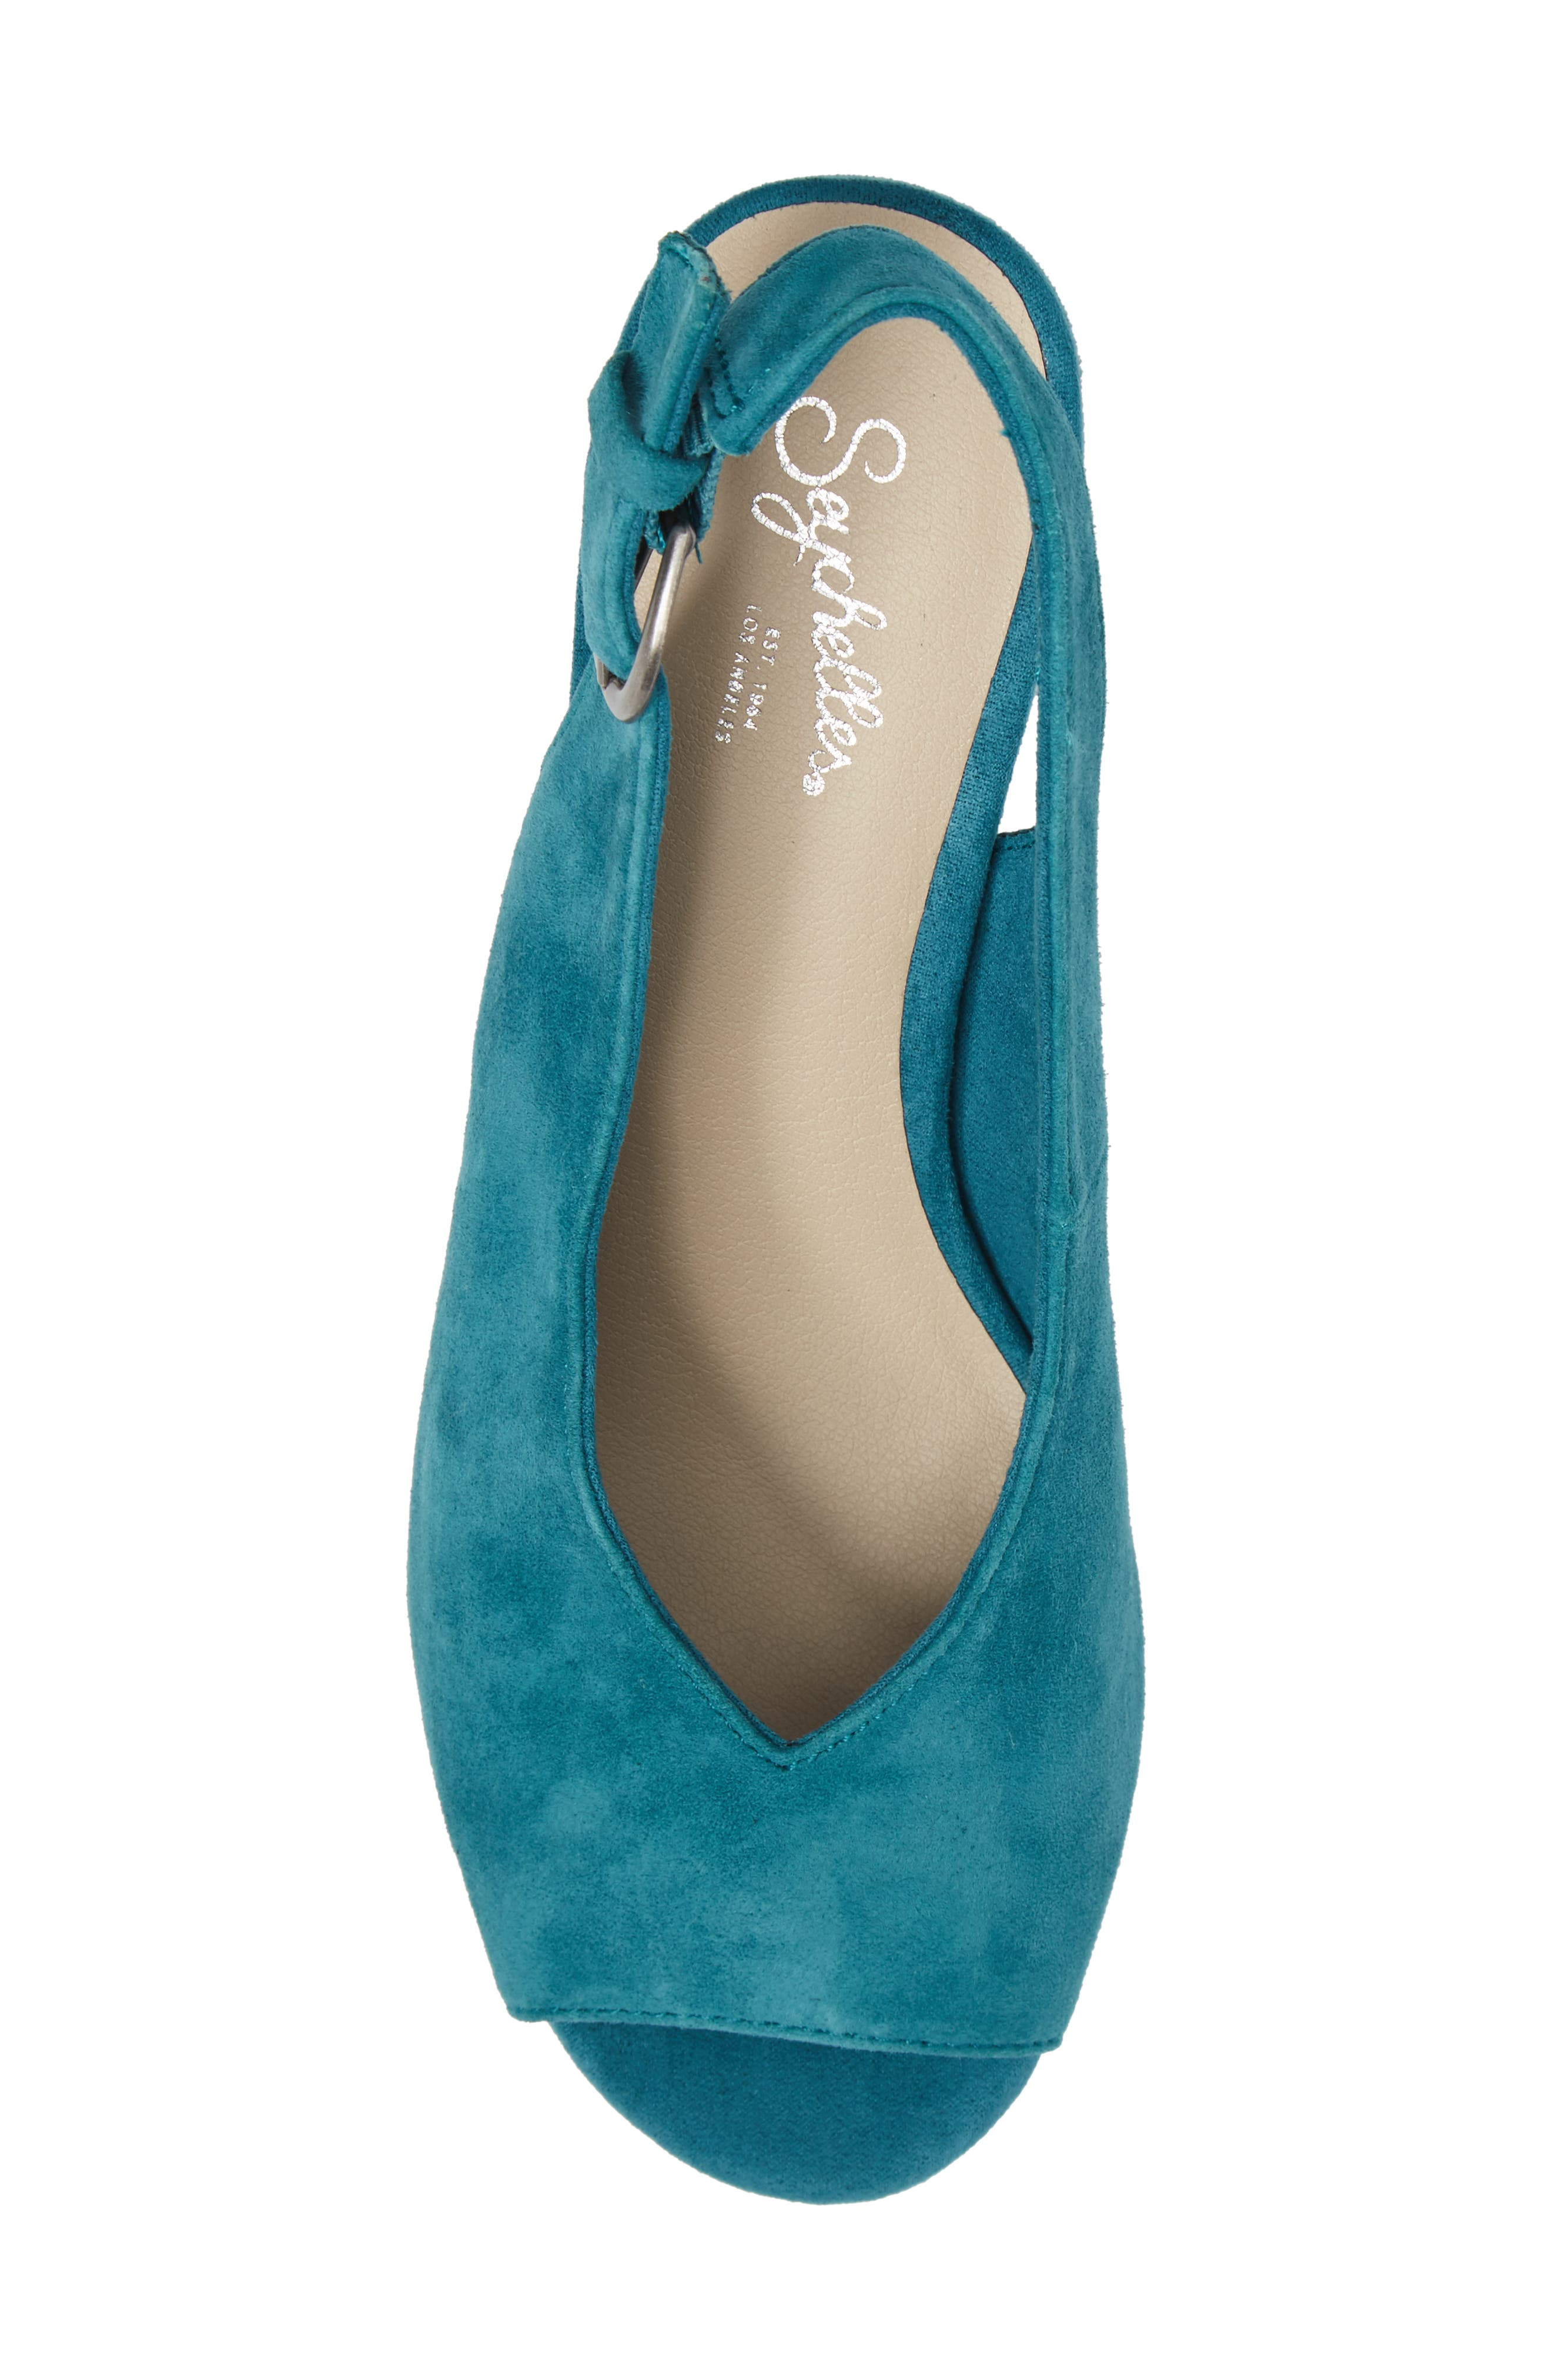 Playwright Slingback Sandal,                             Alternate thumbnail 5, color,                             TEAL SUEDE